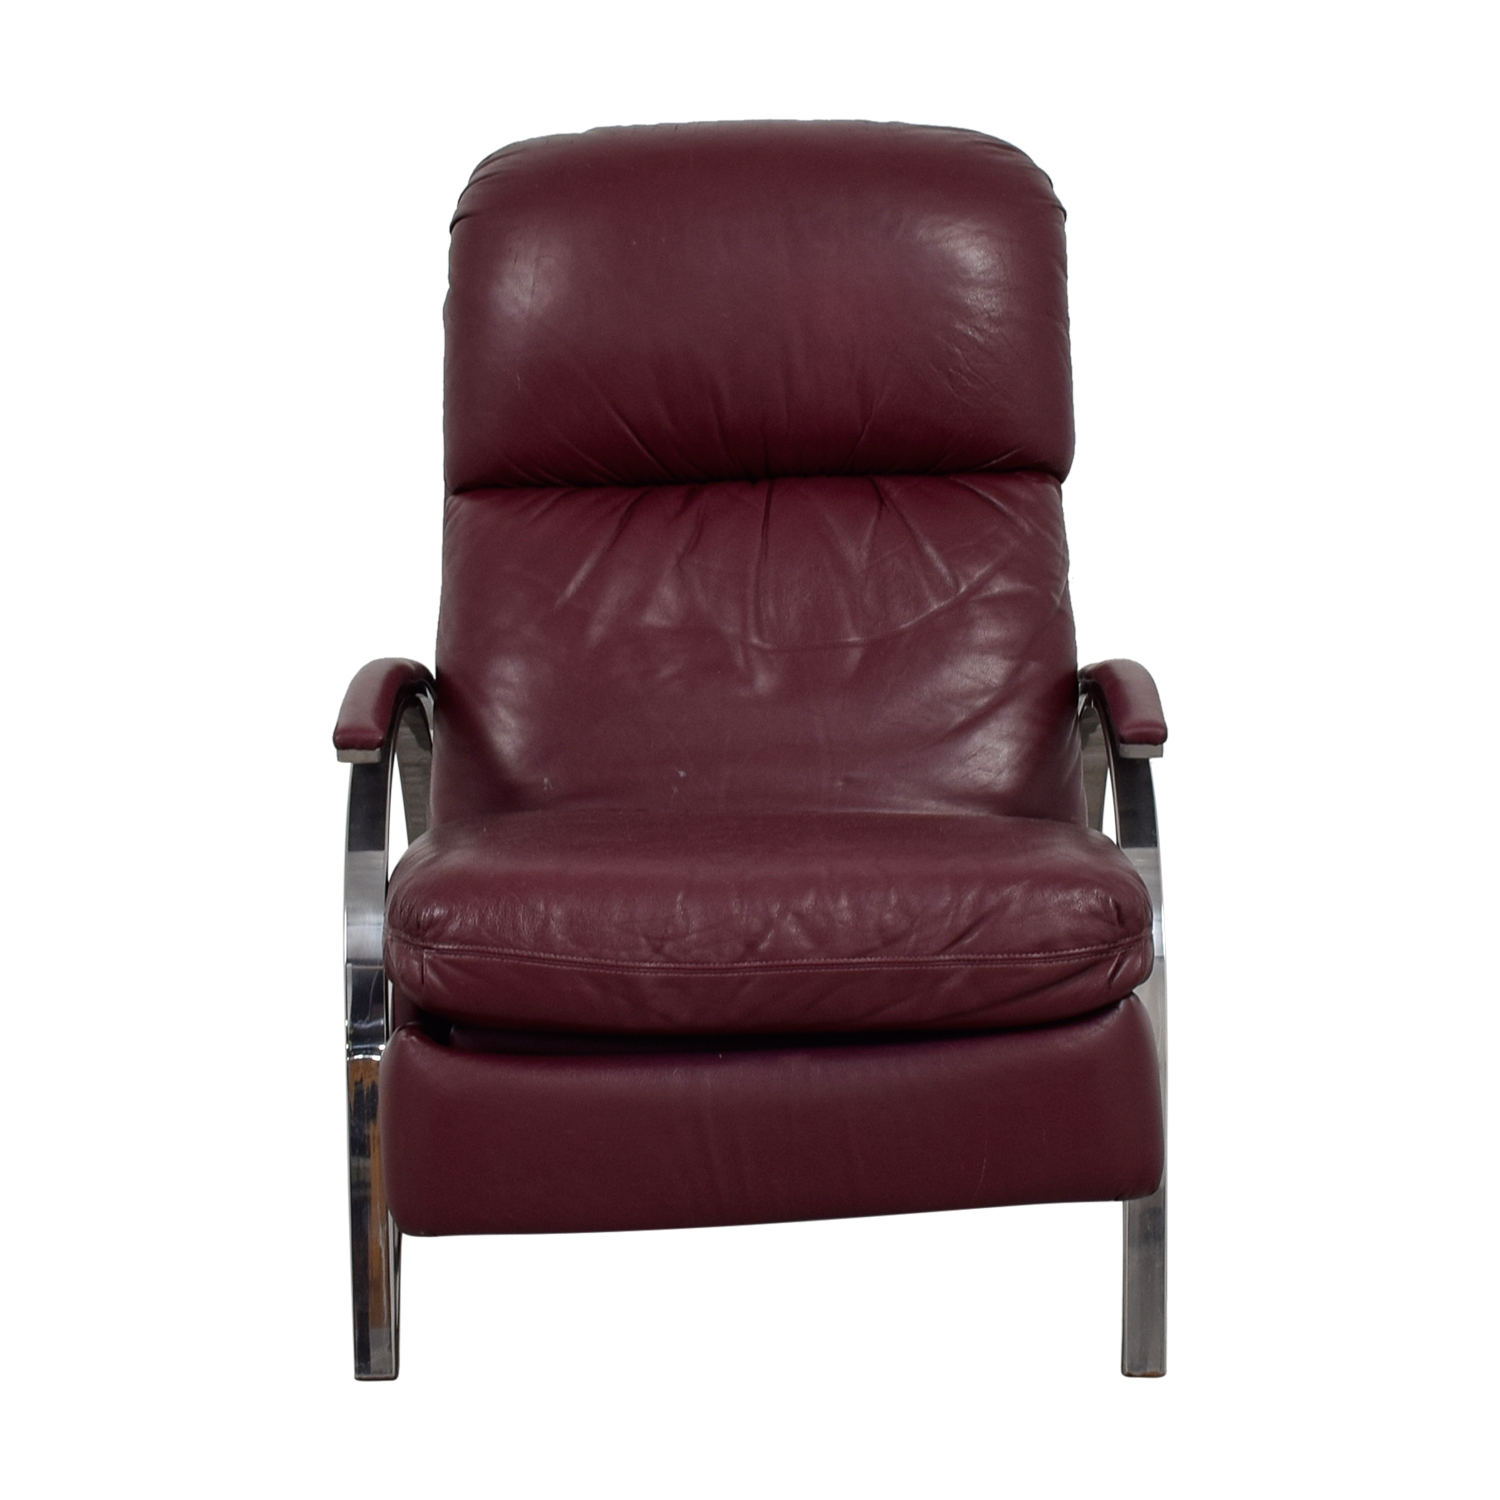 90 OFF  Burgundy Leather Recliner Chair  Chairs